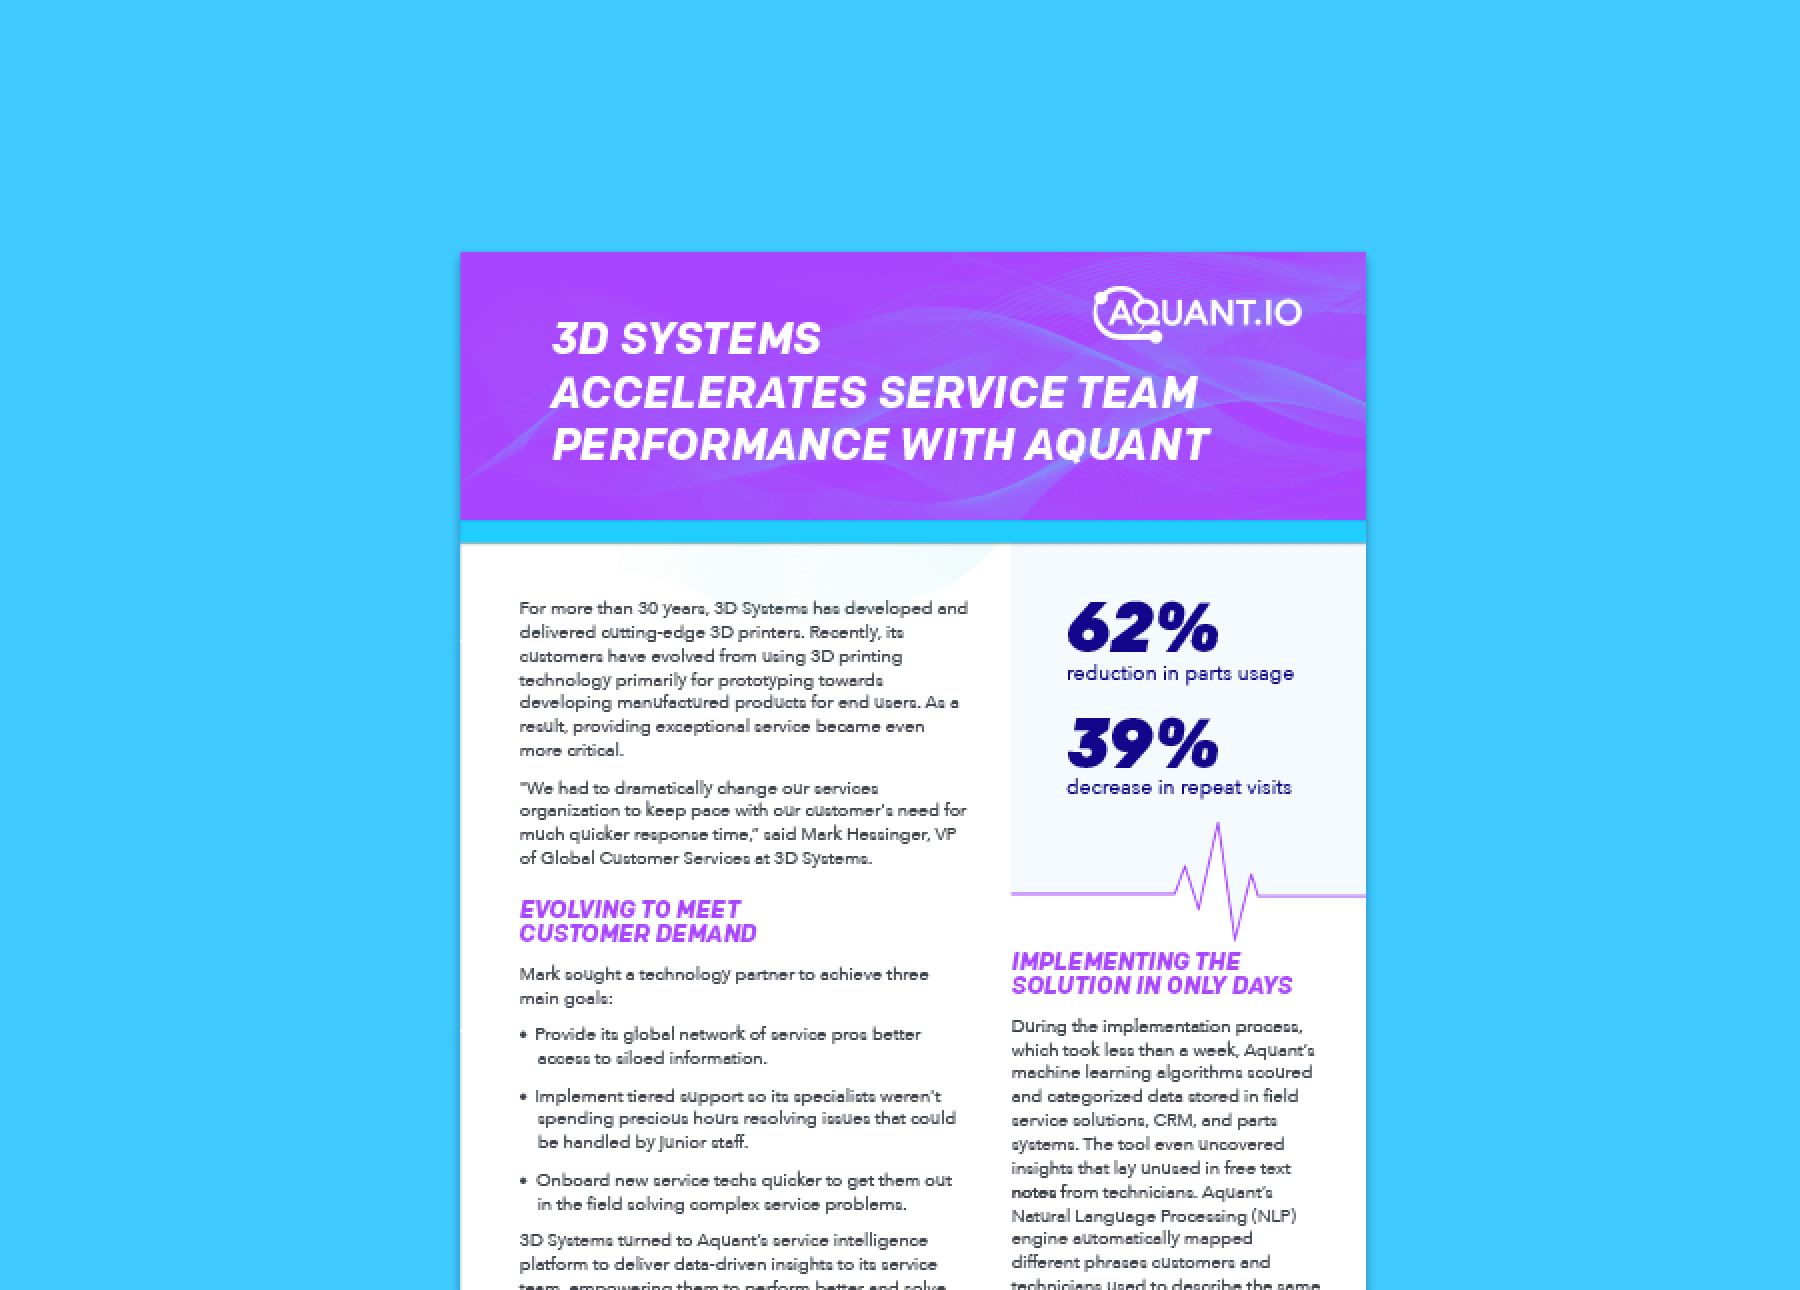 Case Study: - 3D Systems Accelerates service Team Performance with Aquant